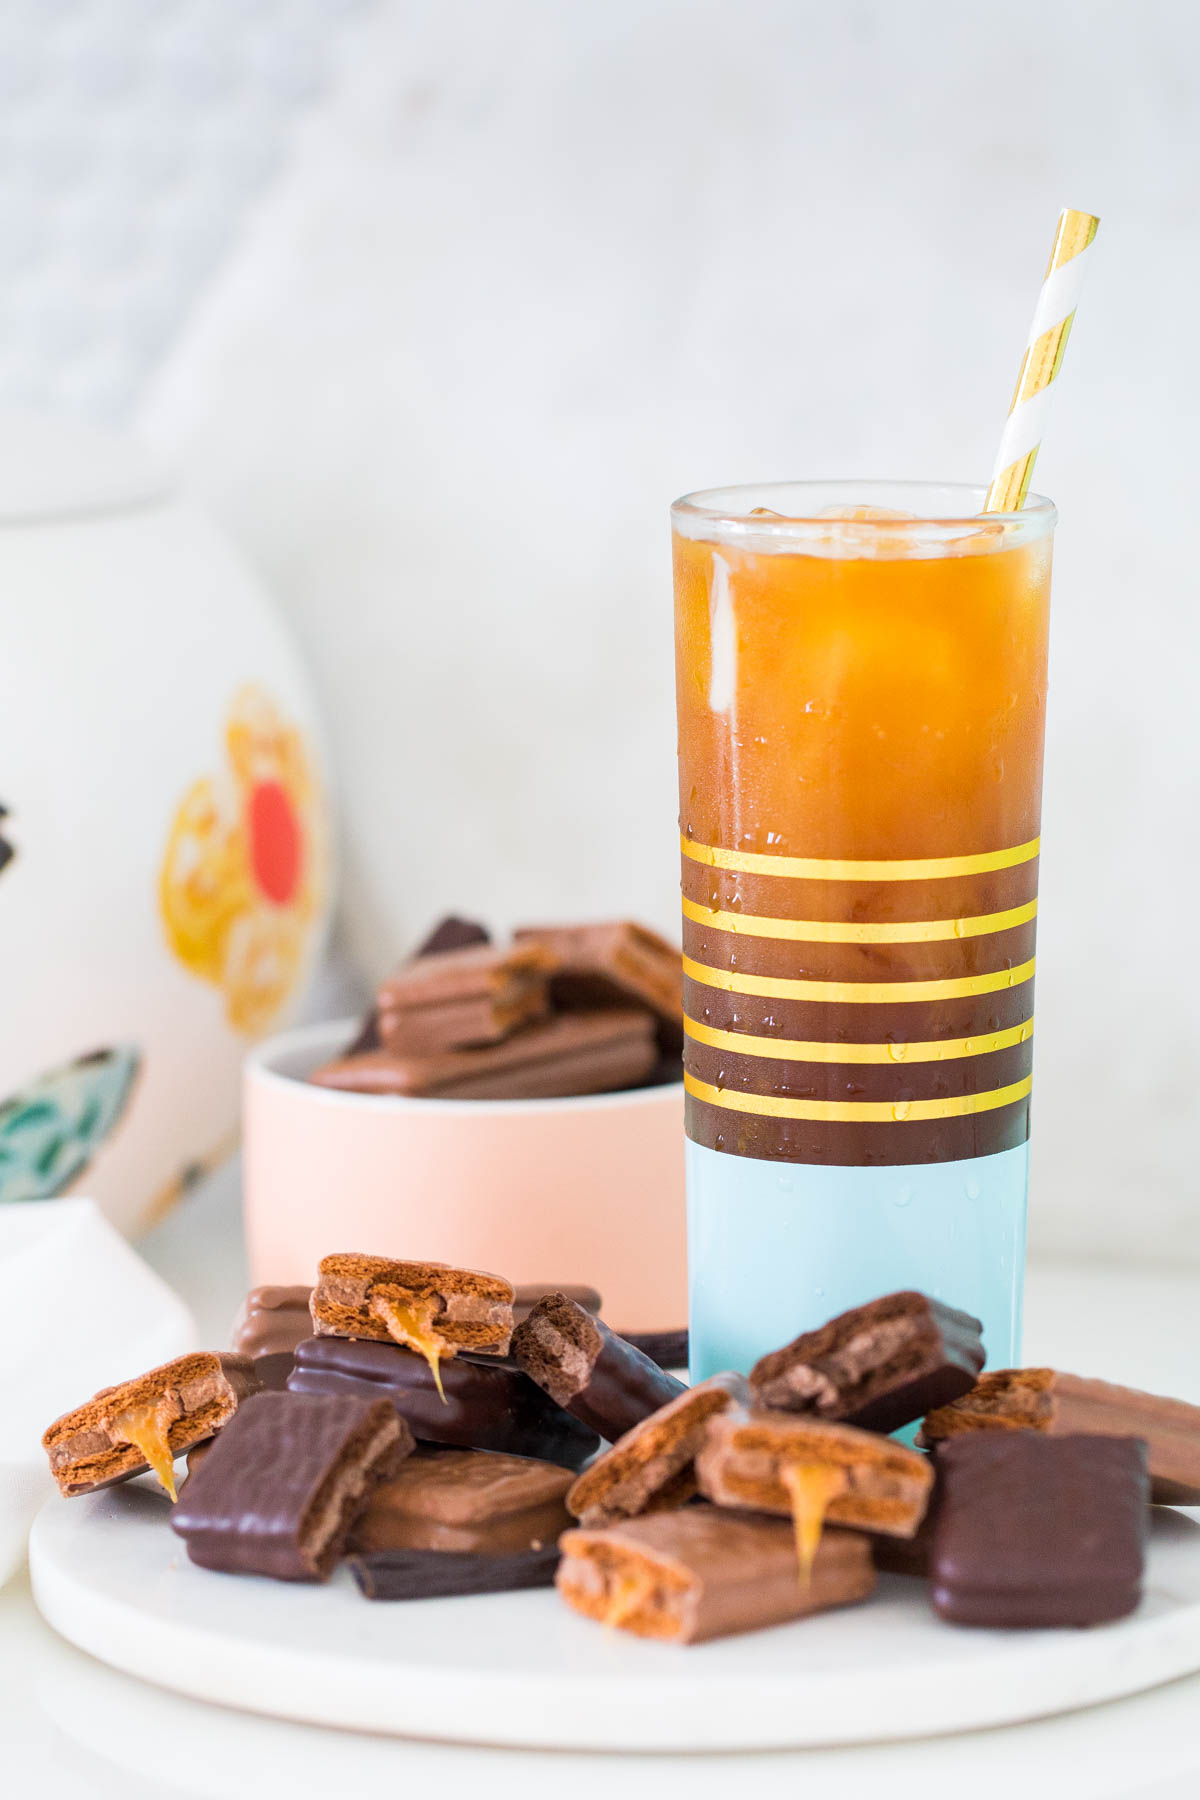 A Vanilla Bean Sparkling Iced Coffee Recipe with Tim Tam by top Houston lifestyle blogger, Ashley Rose of Sugar and Cloth